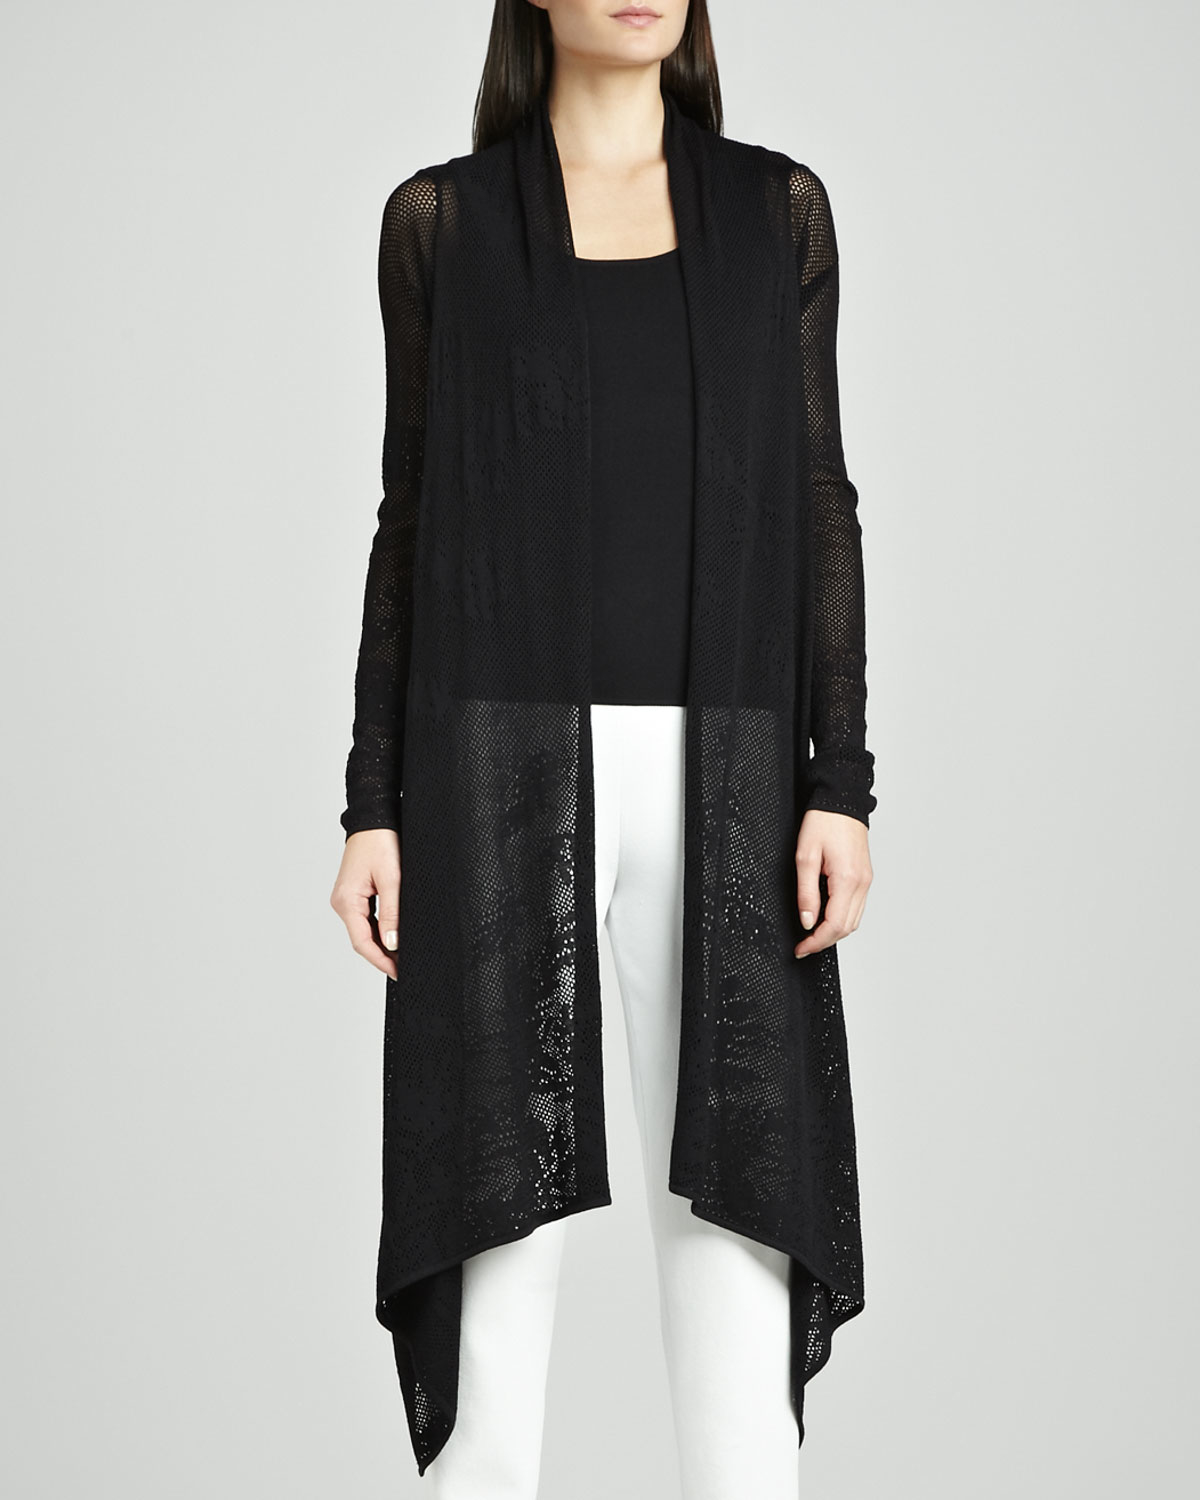 Neiman marcus Long Lace Waterfall Cardigan in Black | Lyst